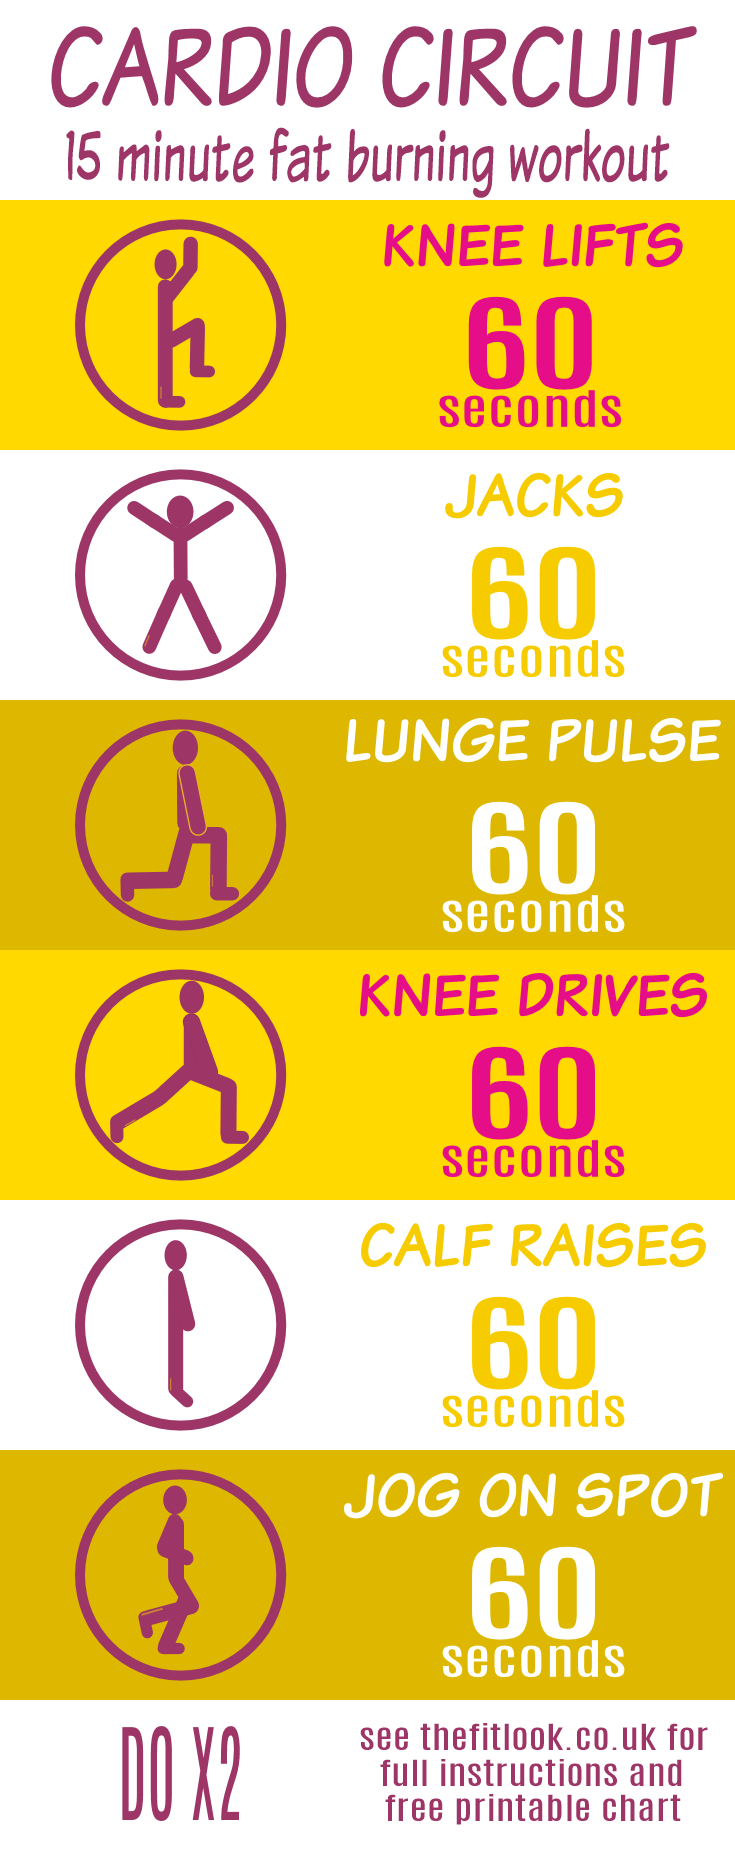 #effective #exercises #calories #download #improve #fitness #circuit #workout #seconds #health #card...